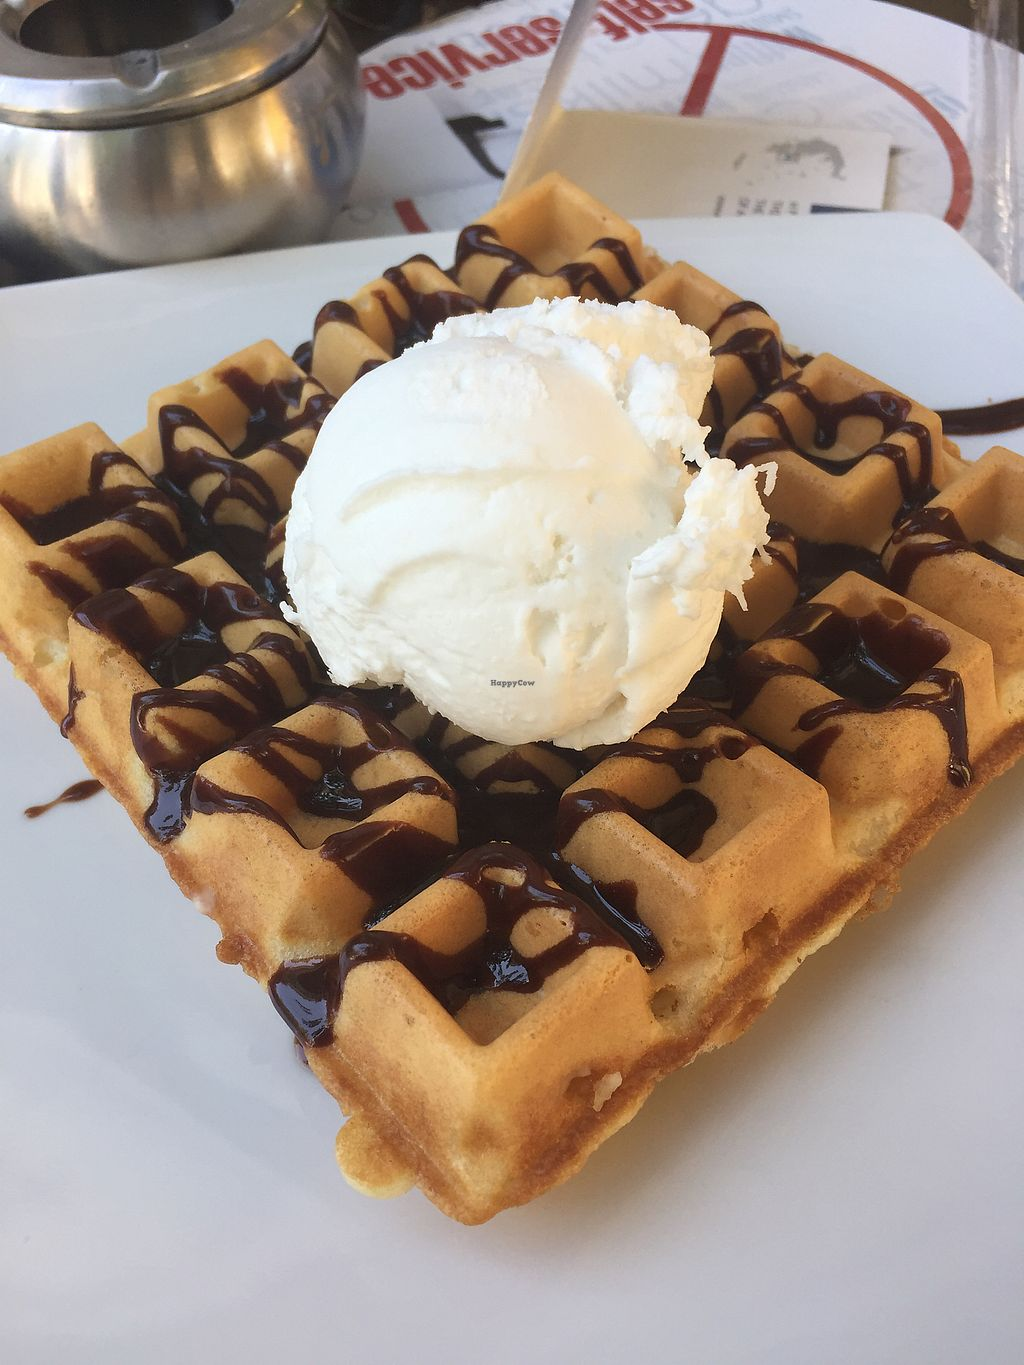 """Photo of Ice Queen Gelato  by <a href=""""/members/profile/TheVeganNarwhal"""">TheVeganNarwhal</a> <br/>Vegan waffle w/ choco sauce and gelato <br/> February 12, 2018  - <a href='/contact/abuse/image/45730/358265'>Report</a>"""